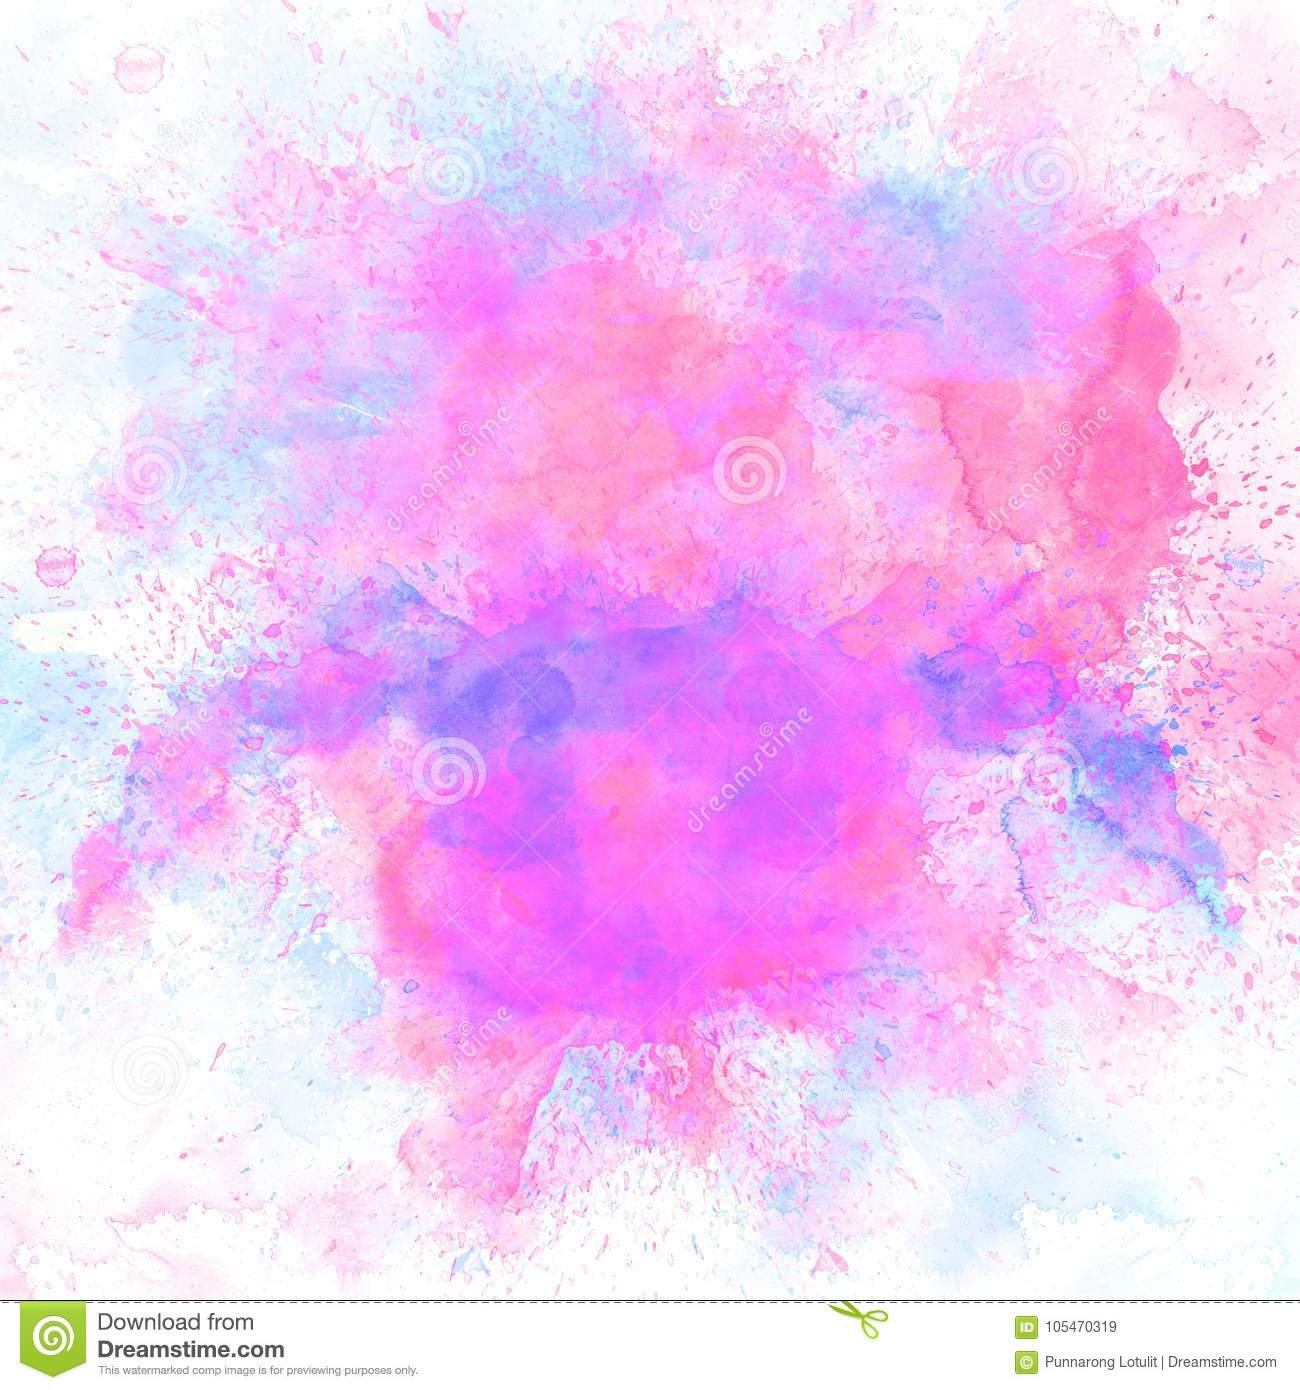 Abstract Colorful Watercolor Painting Background, Colorful Brush.